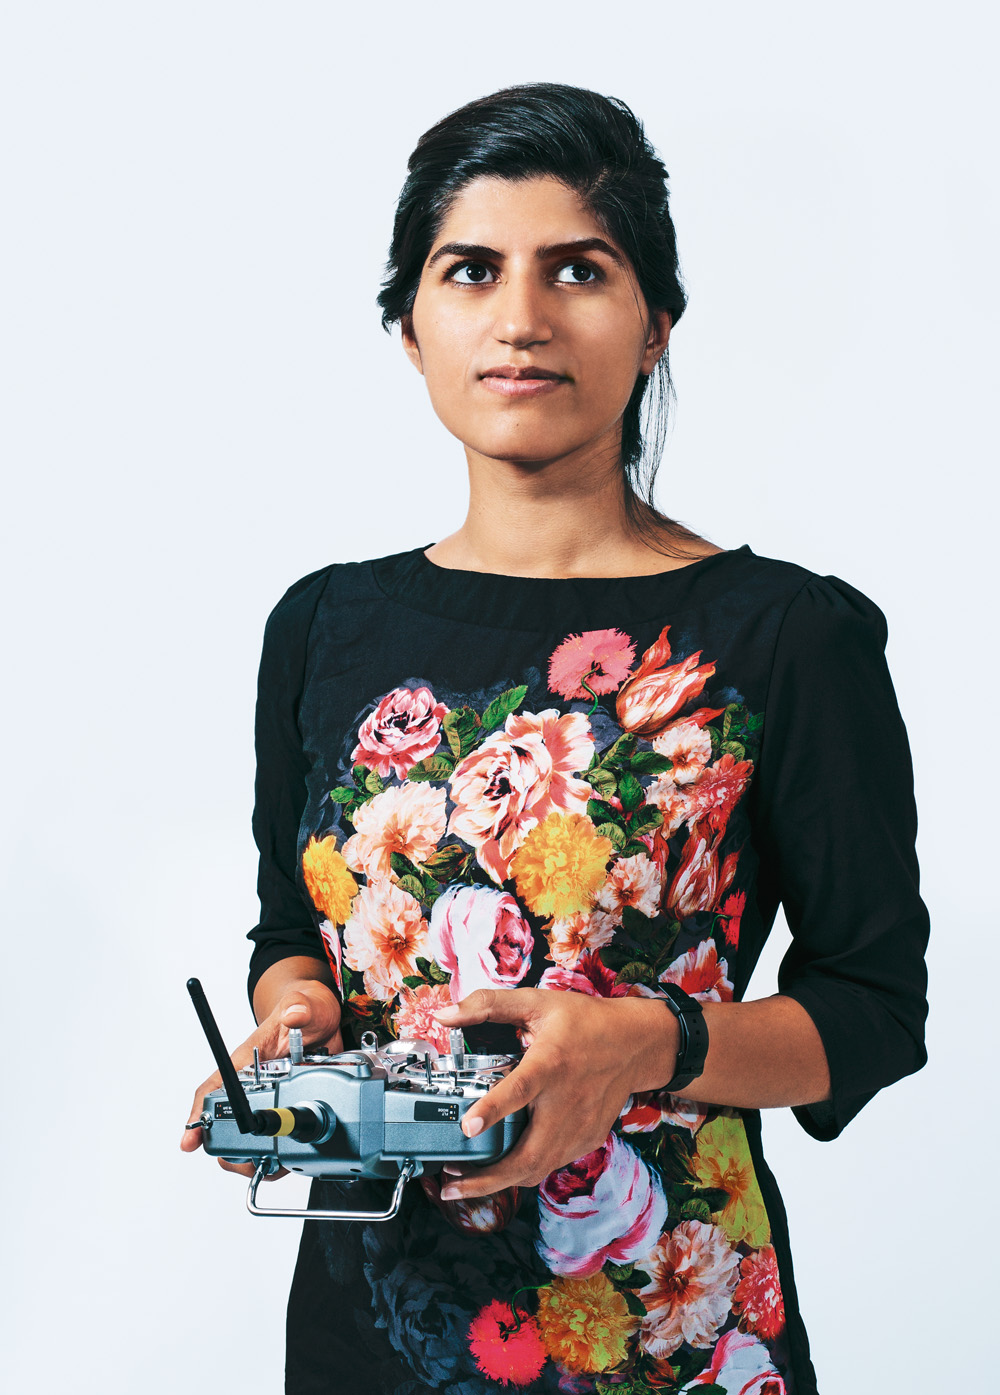 Samira Hayat is a doctoral student and researcher on networked drone systems.